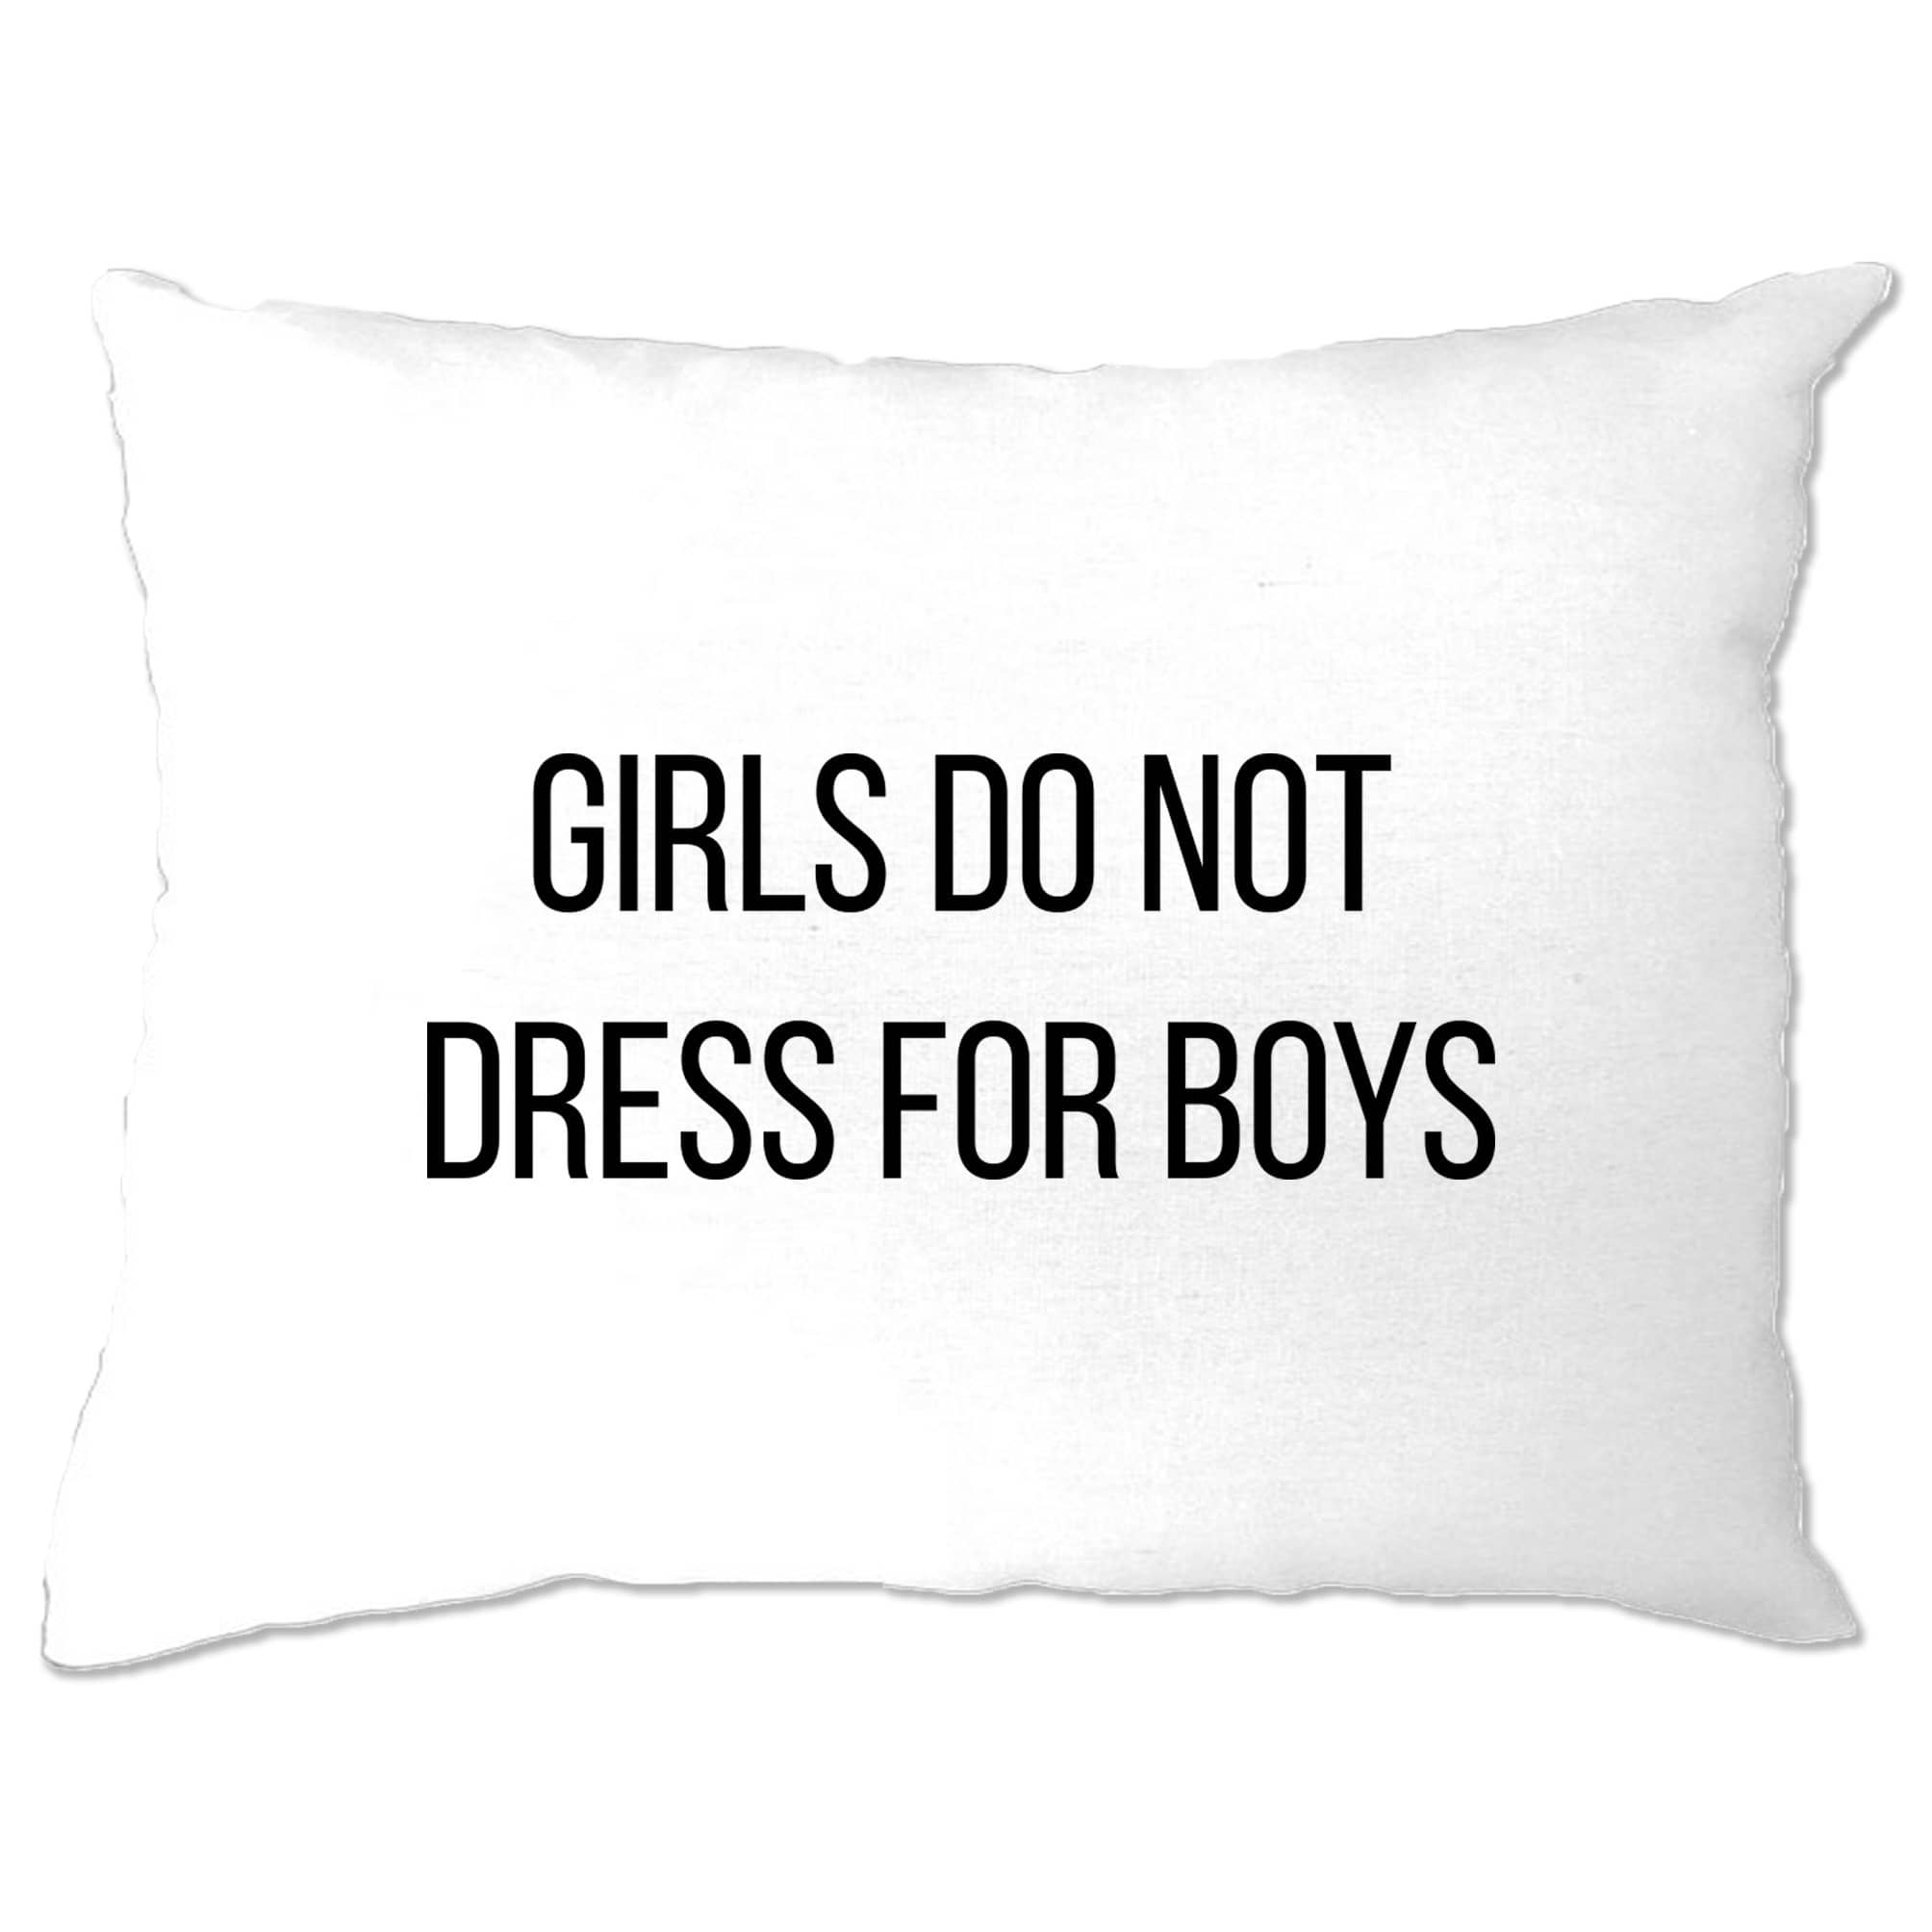 Feminist Pillow Case Girls Do Not Dress For Boys Slogan